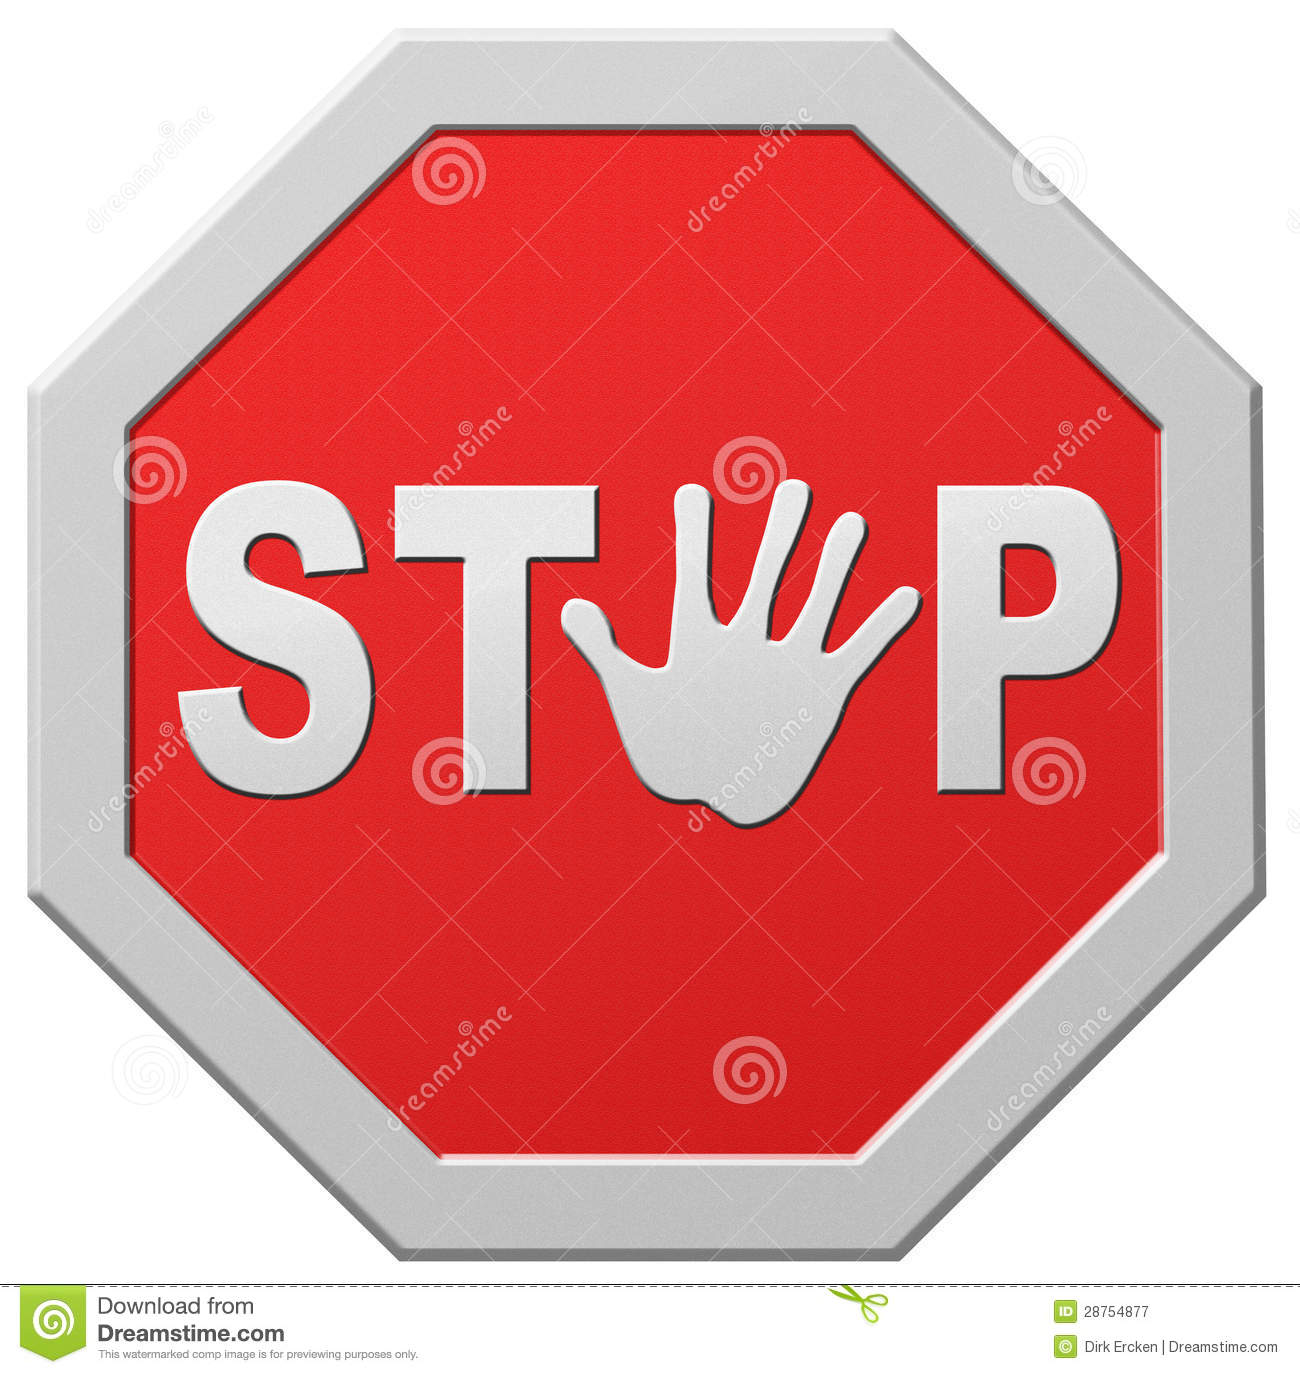 yahoo sign in how how to stop